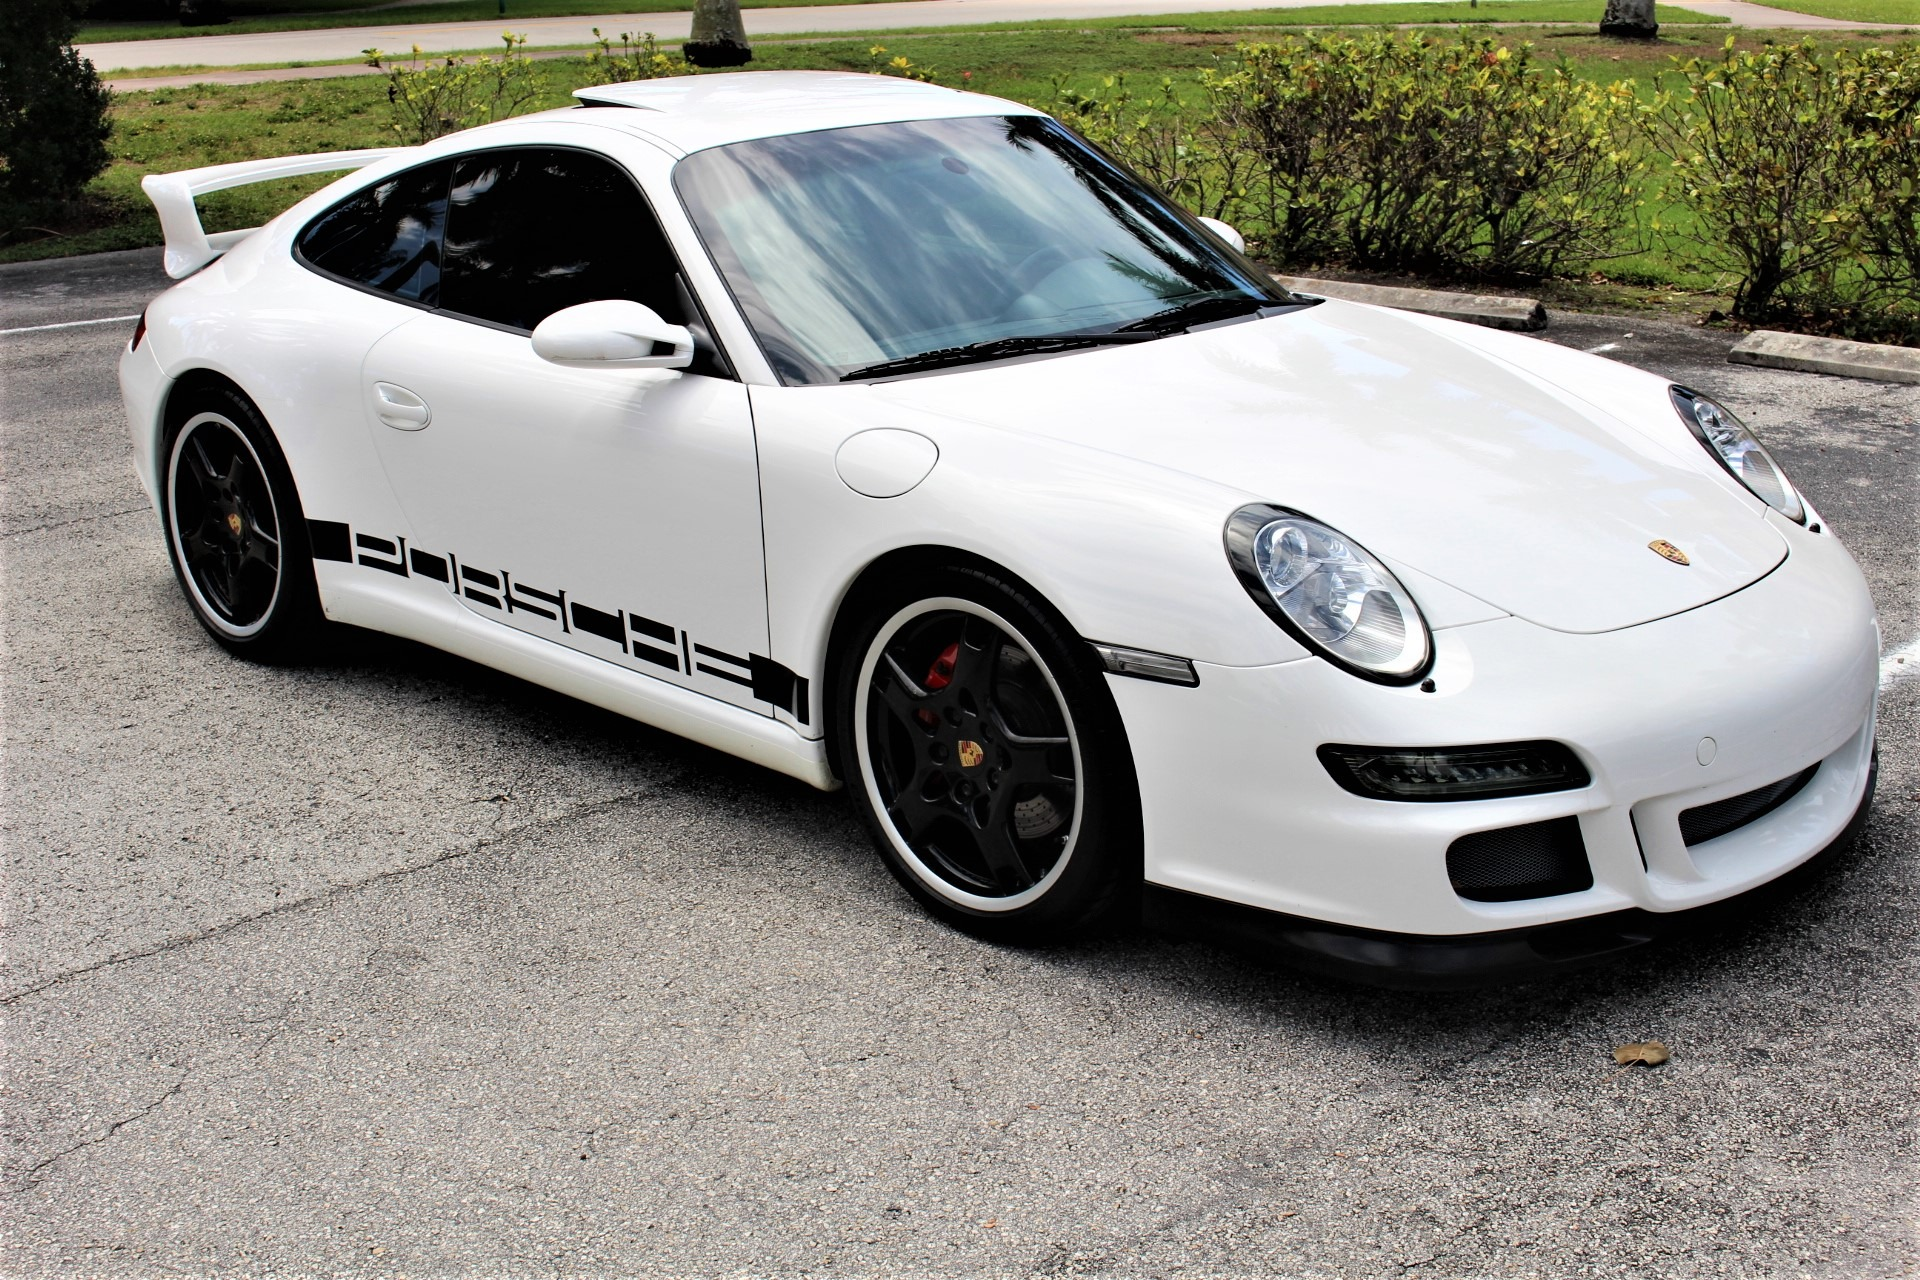 Used 2008 Porsche 911 Carrera S for sale $69,850 at The Gables Sports Cars in Miami FL 33146 1